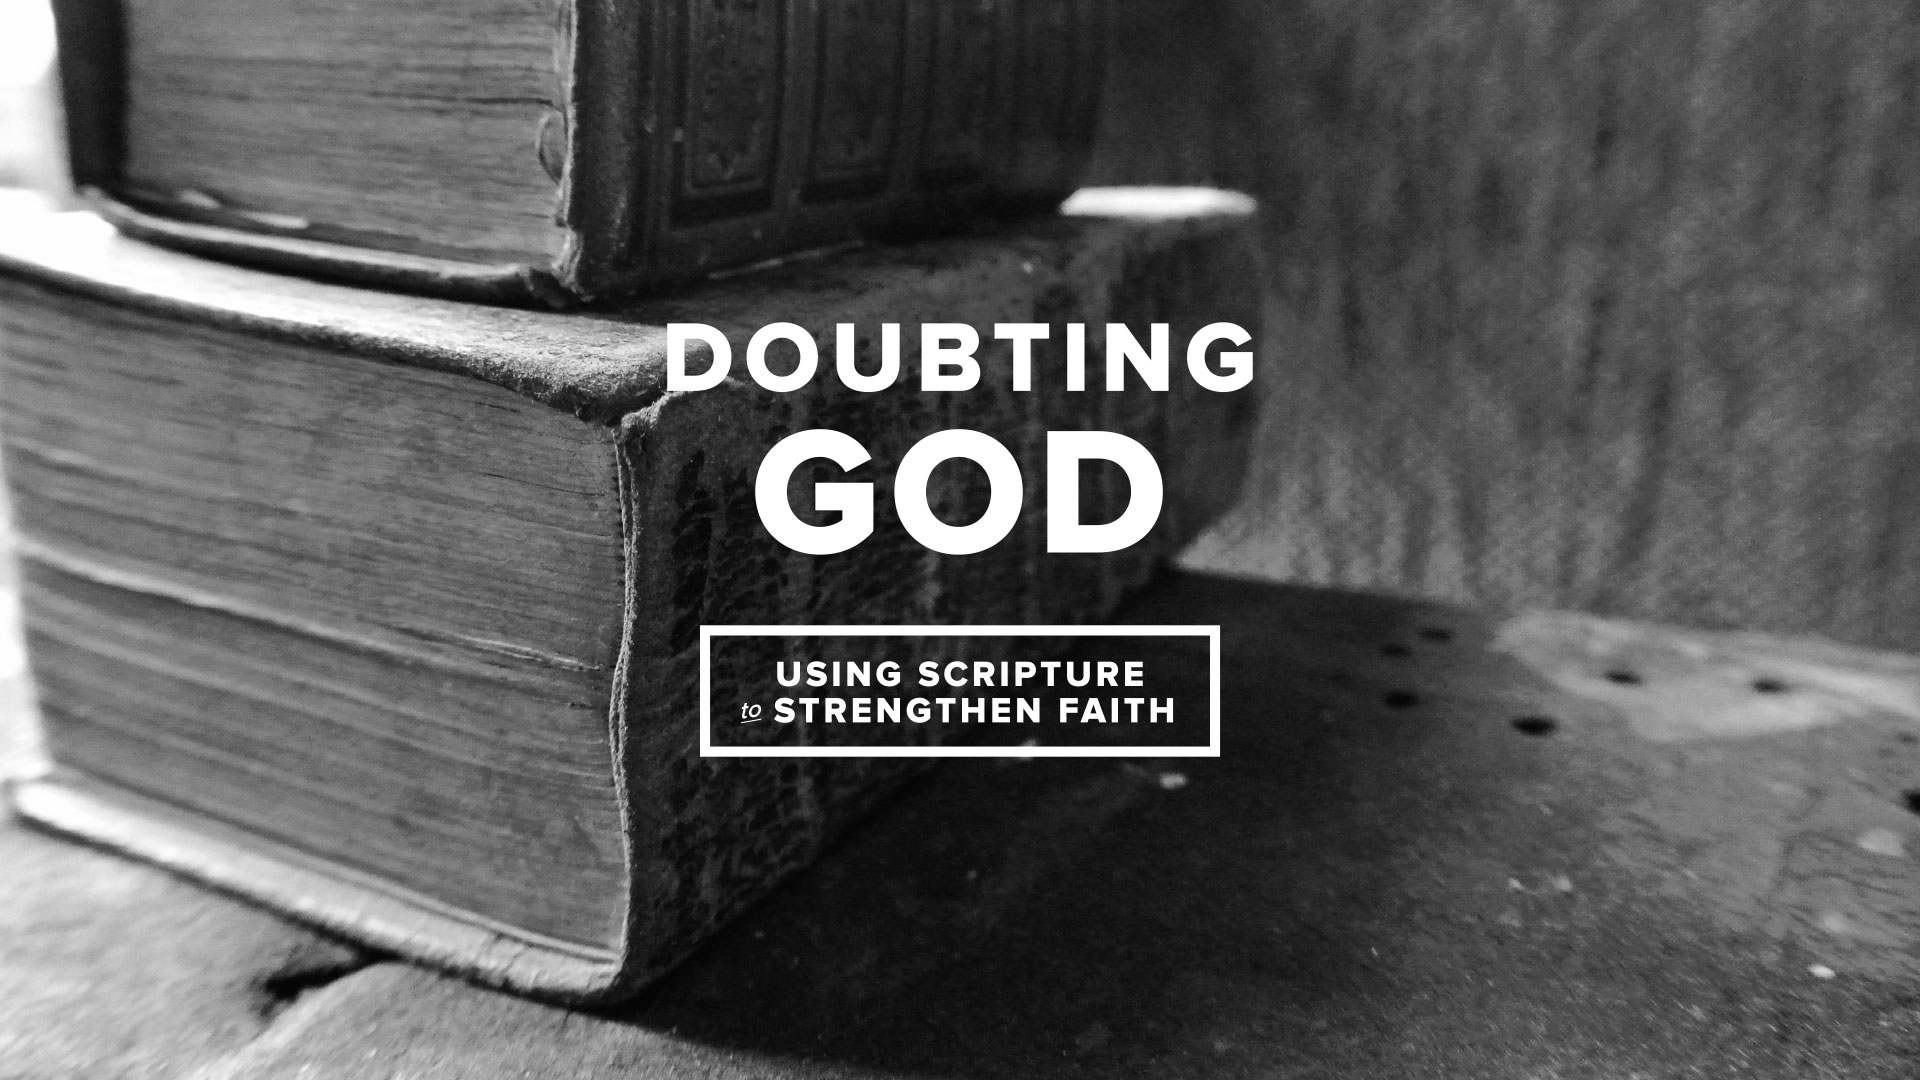 Doubting-God-HD.jpg